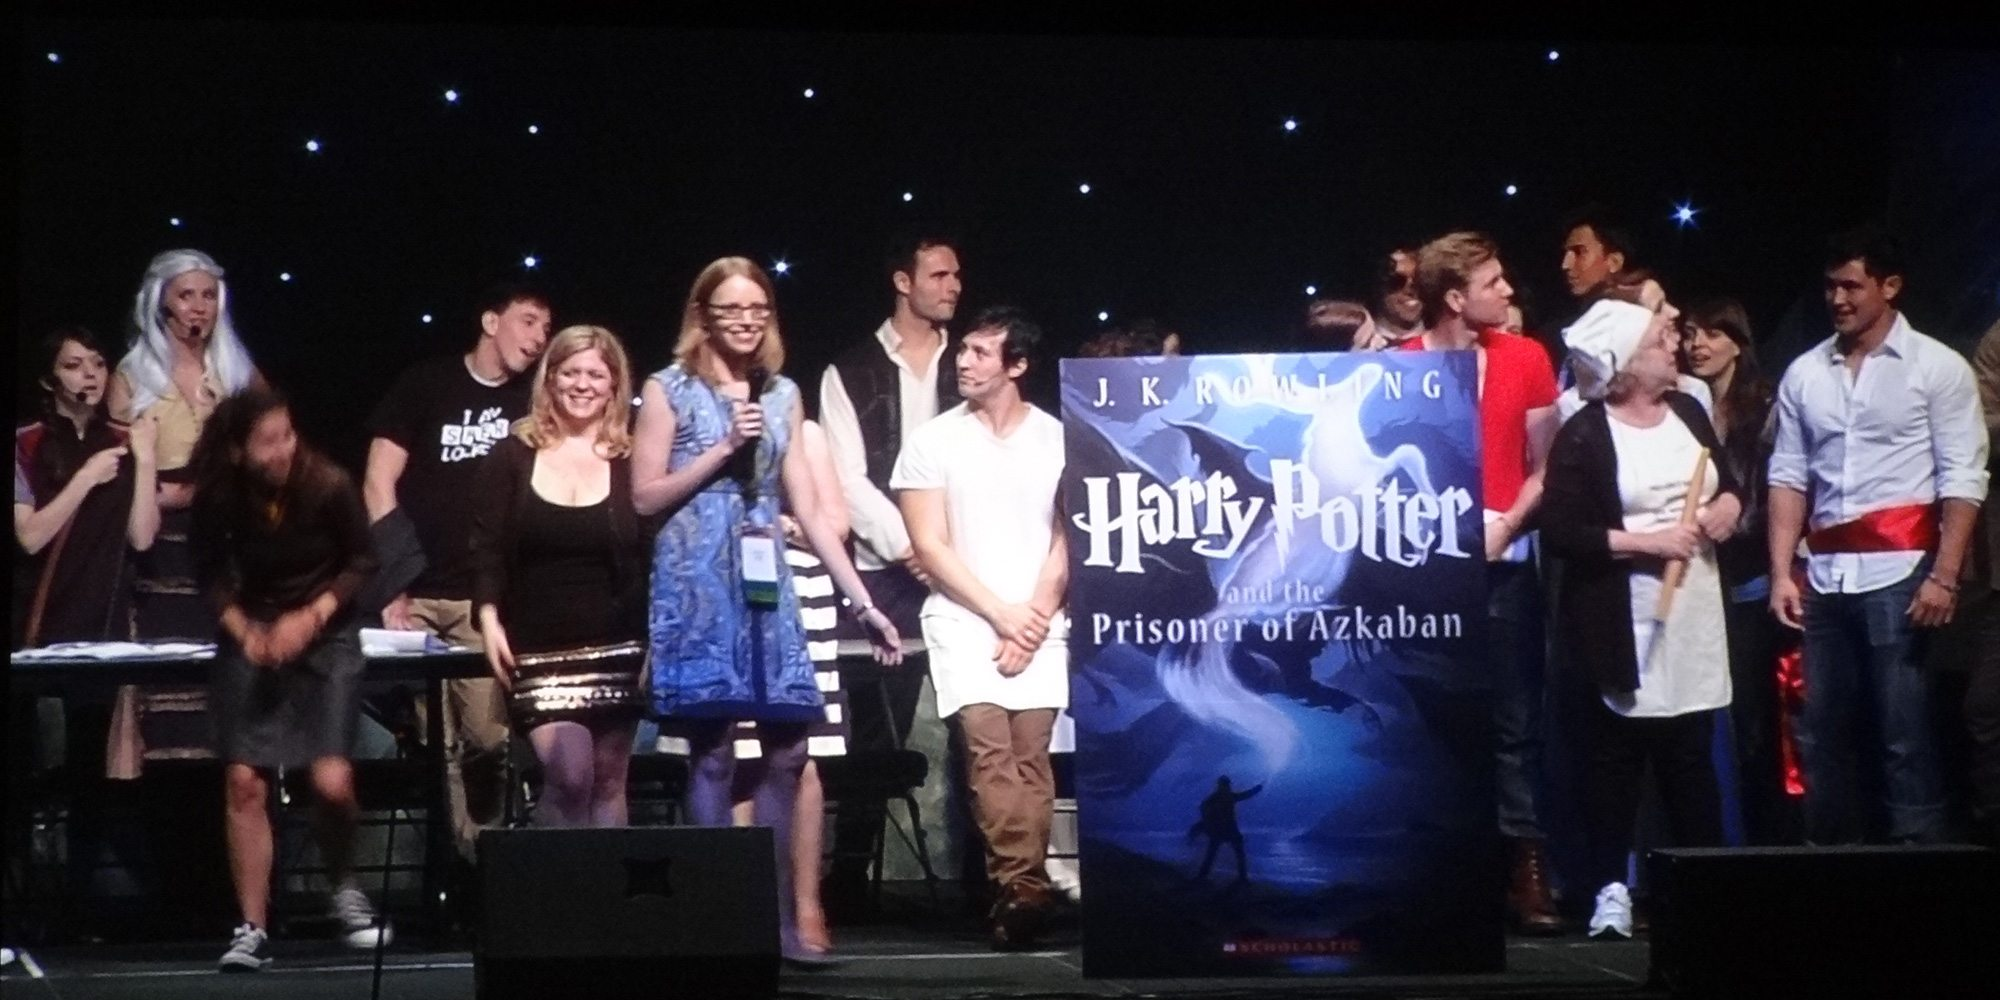 Harry Potter 3 unveiling